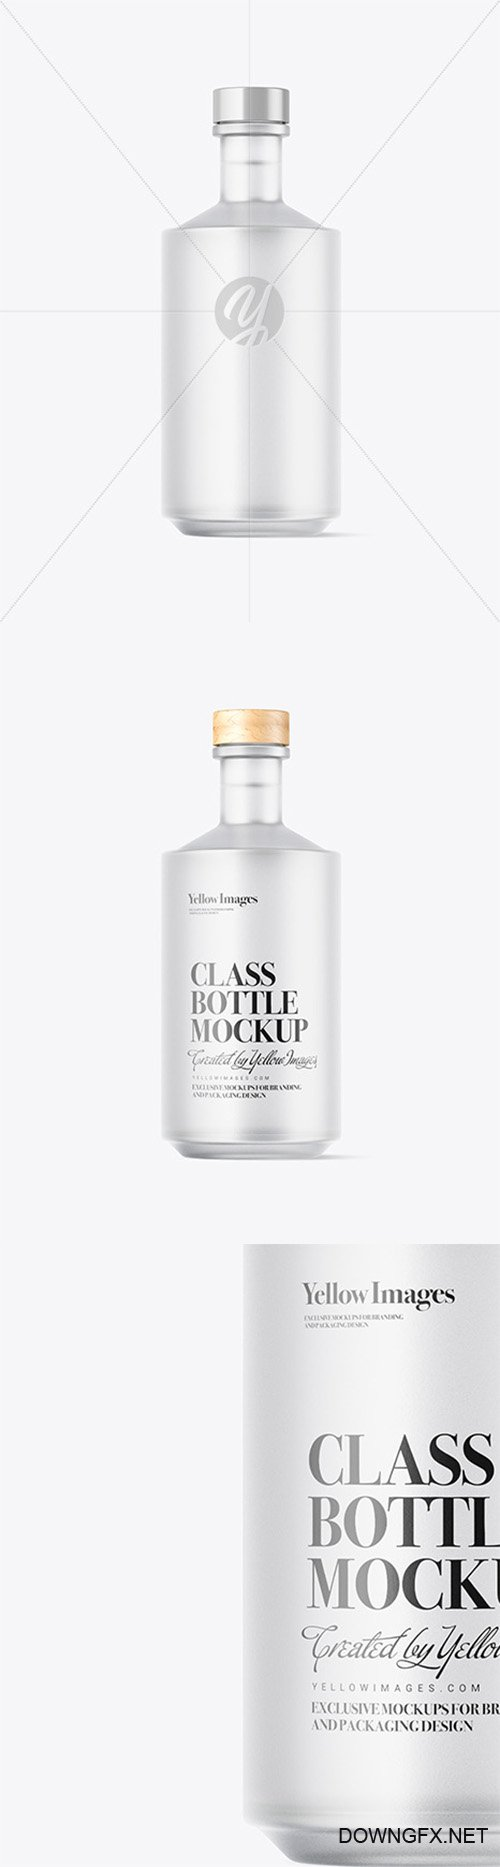 Frosted Vodka Bottle Mockup 64789